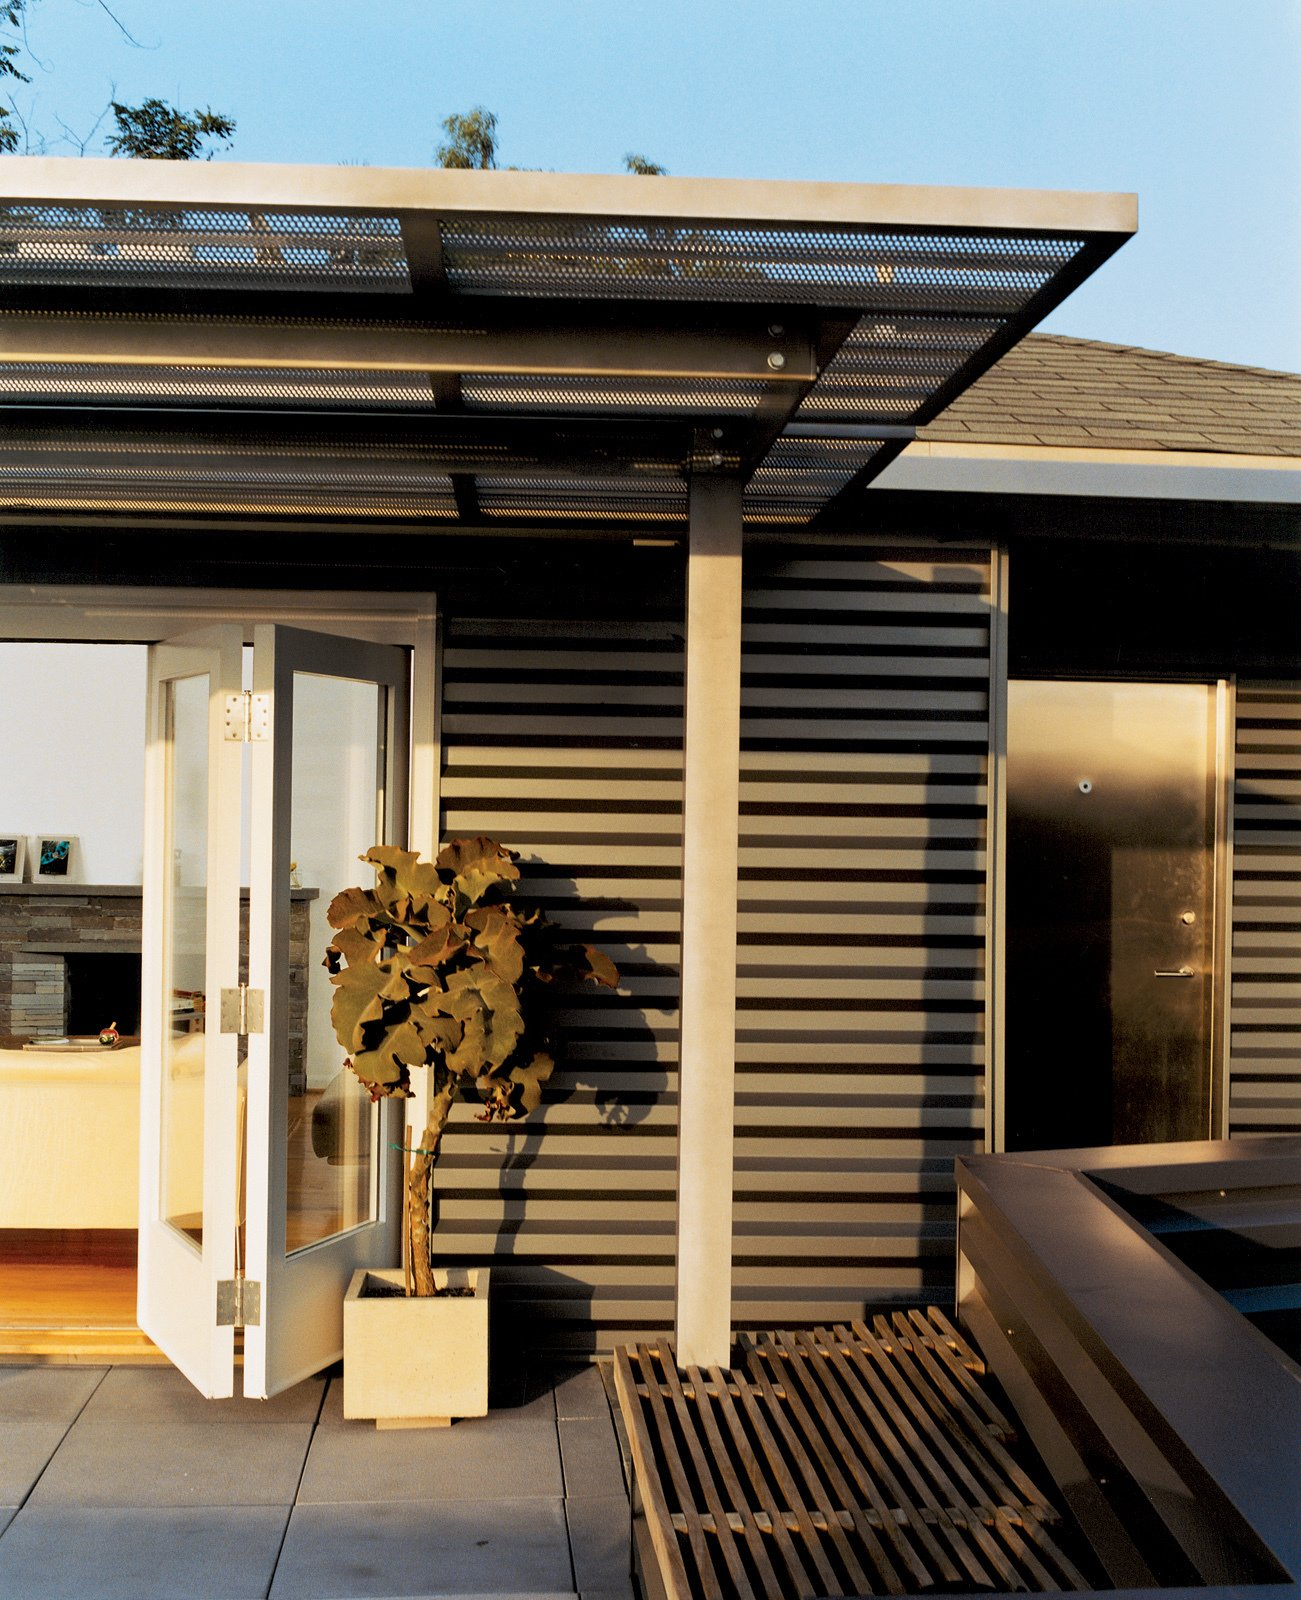 Day skinned the house in corrugated-aluminum siding, a tough industrial palette he picked up while designing airports. The corrugated stainless steel canopy was fabricated by Day's former SCI-Arc classmates.  Photo 3 of 12 in Way Out West